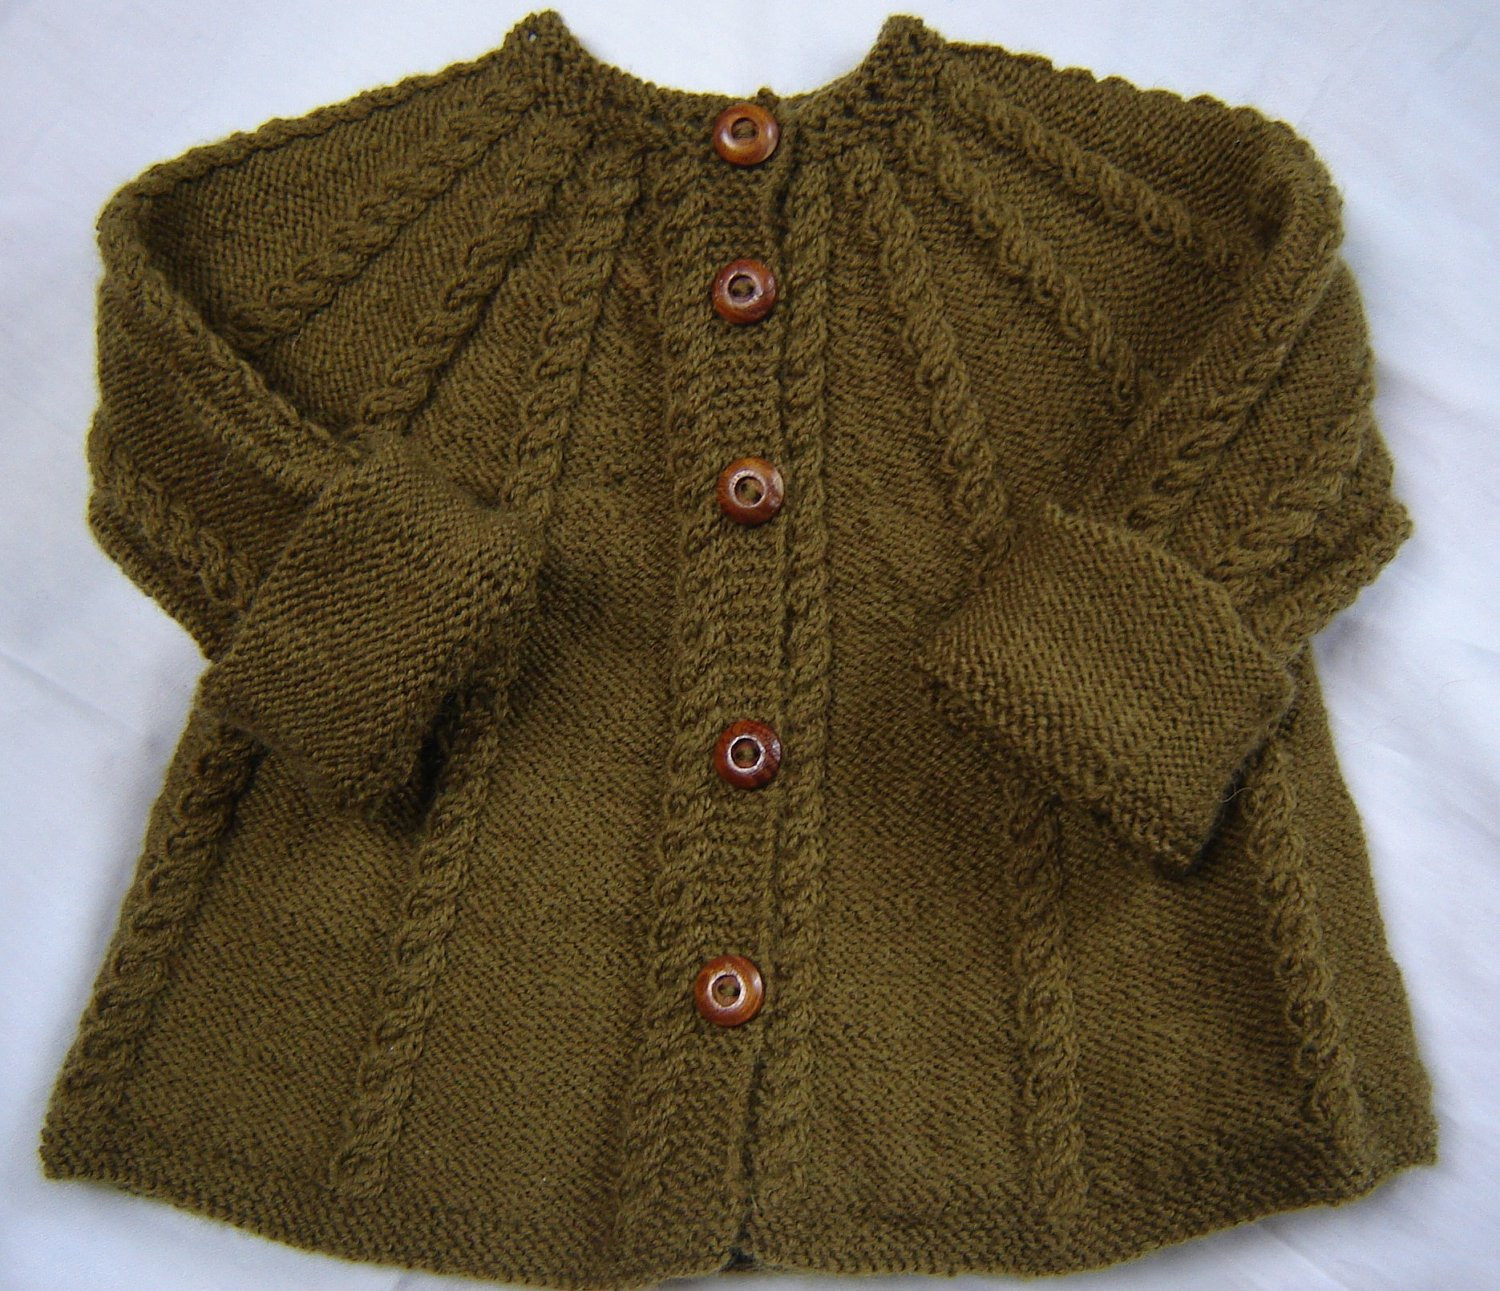 Luxury Baby Sweater Hand Knit Wool Olive Green Size 3m Hand Knitting Wool Of Great 44 Photos Hand Knitting Wool